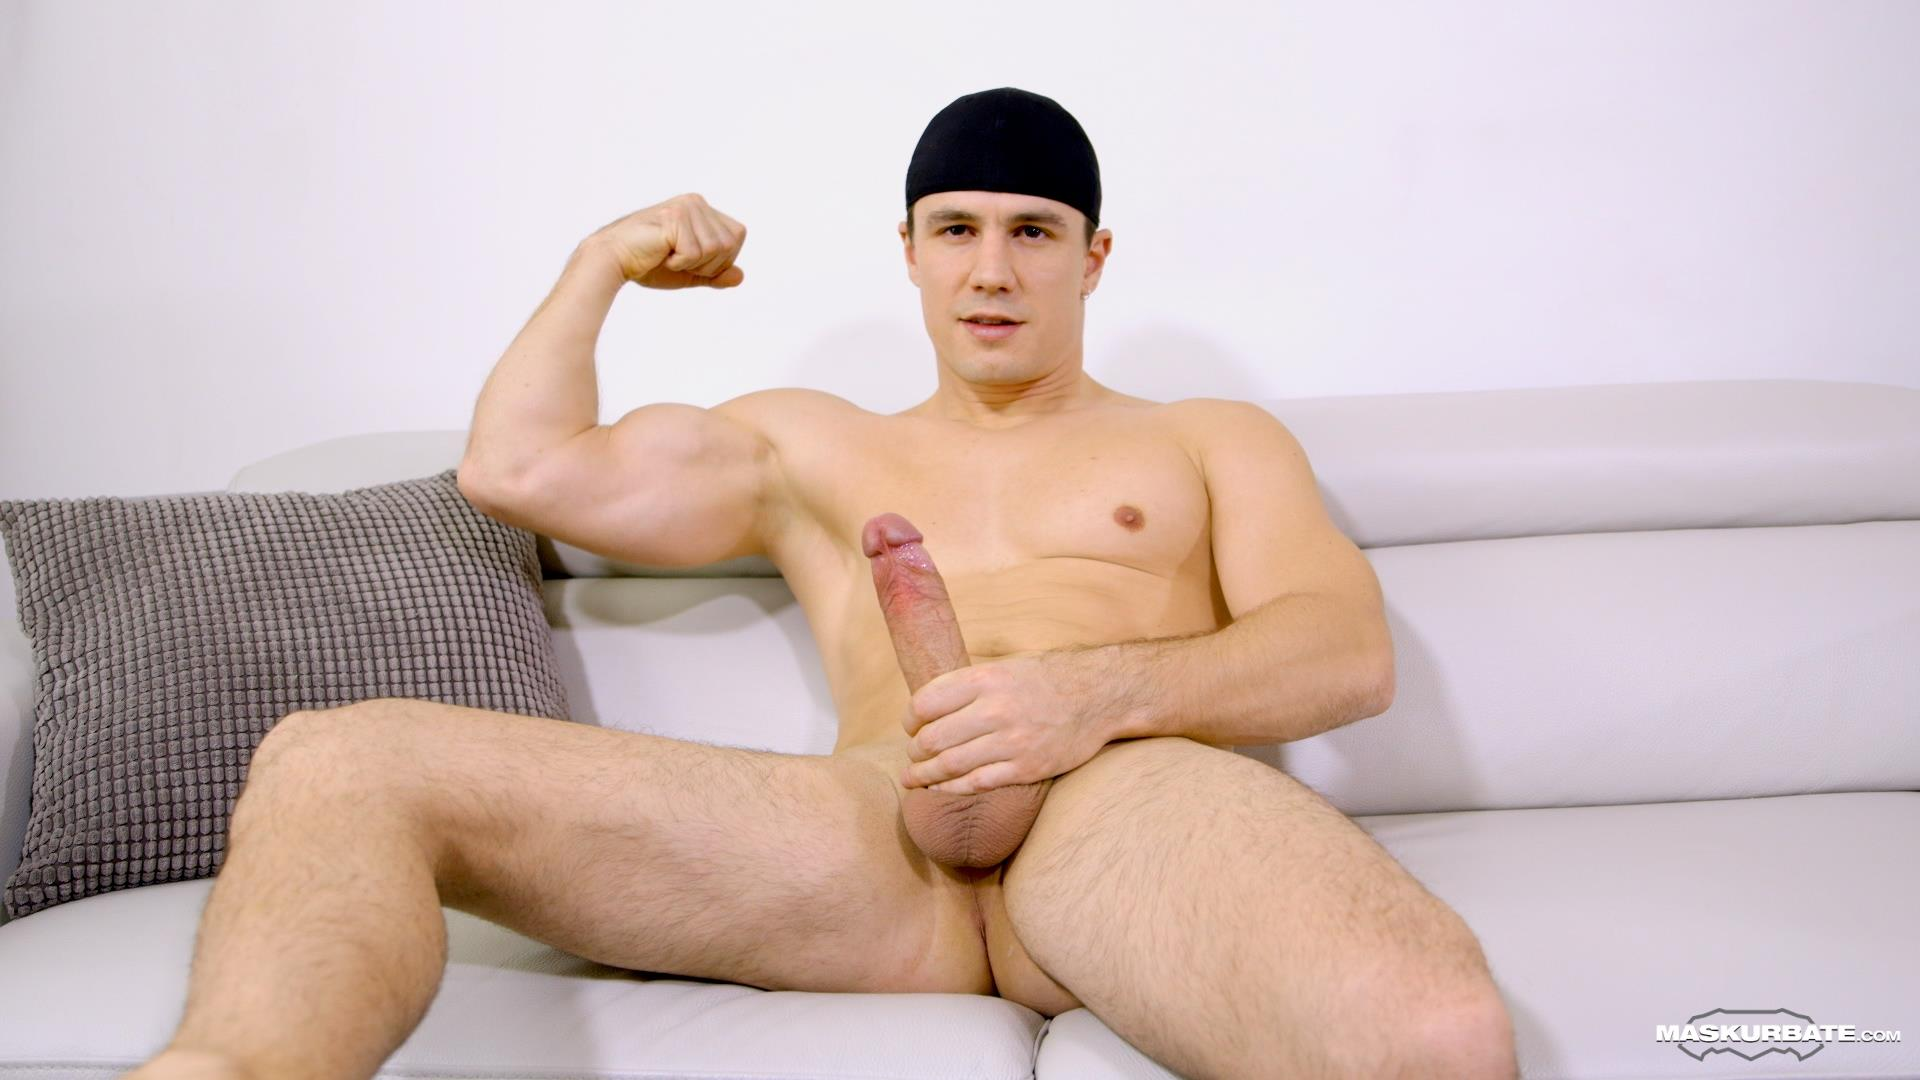 Maskurbate-Ricky-Muscl-Jock-Stroking-His-Big-Uncut-Cock-Amateur-Gay-Porn-10 Smooth Muscle Jock Stroking His Big Uncut Cock